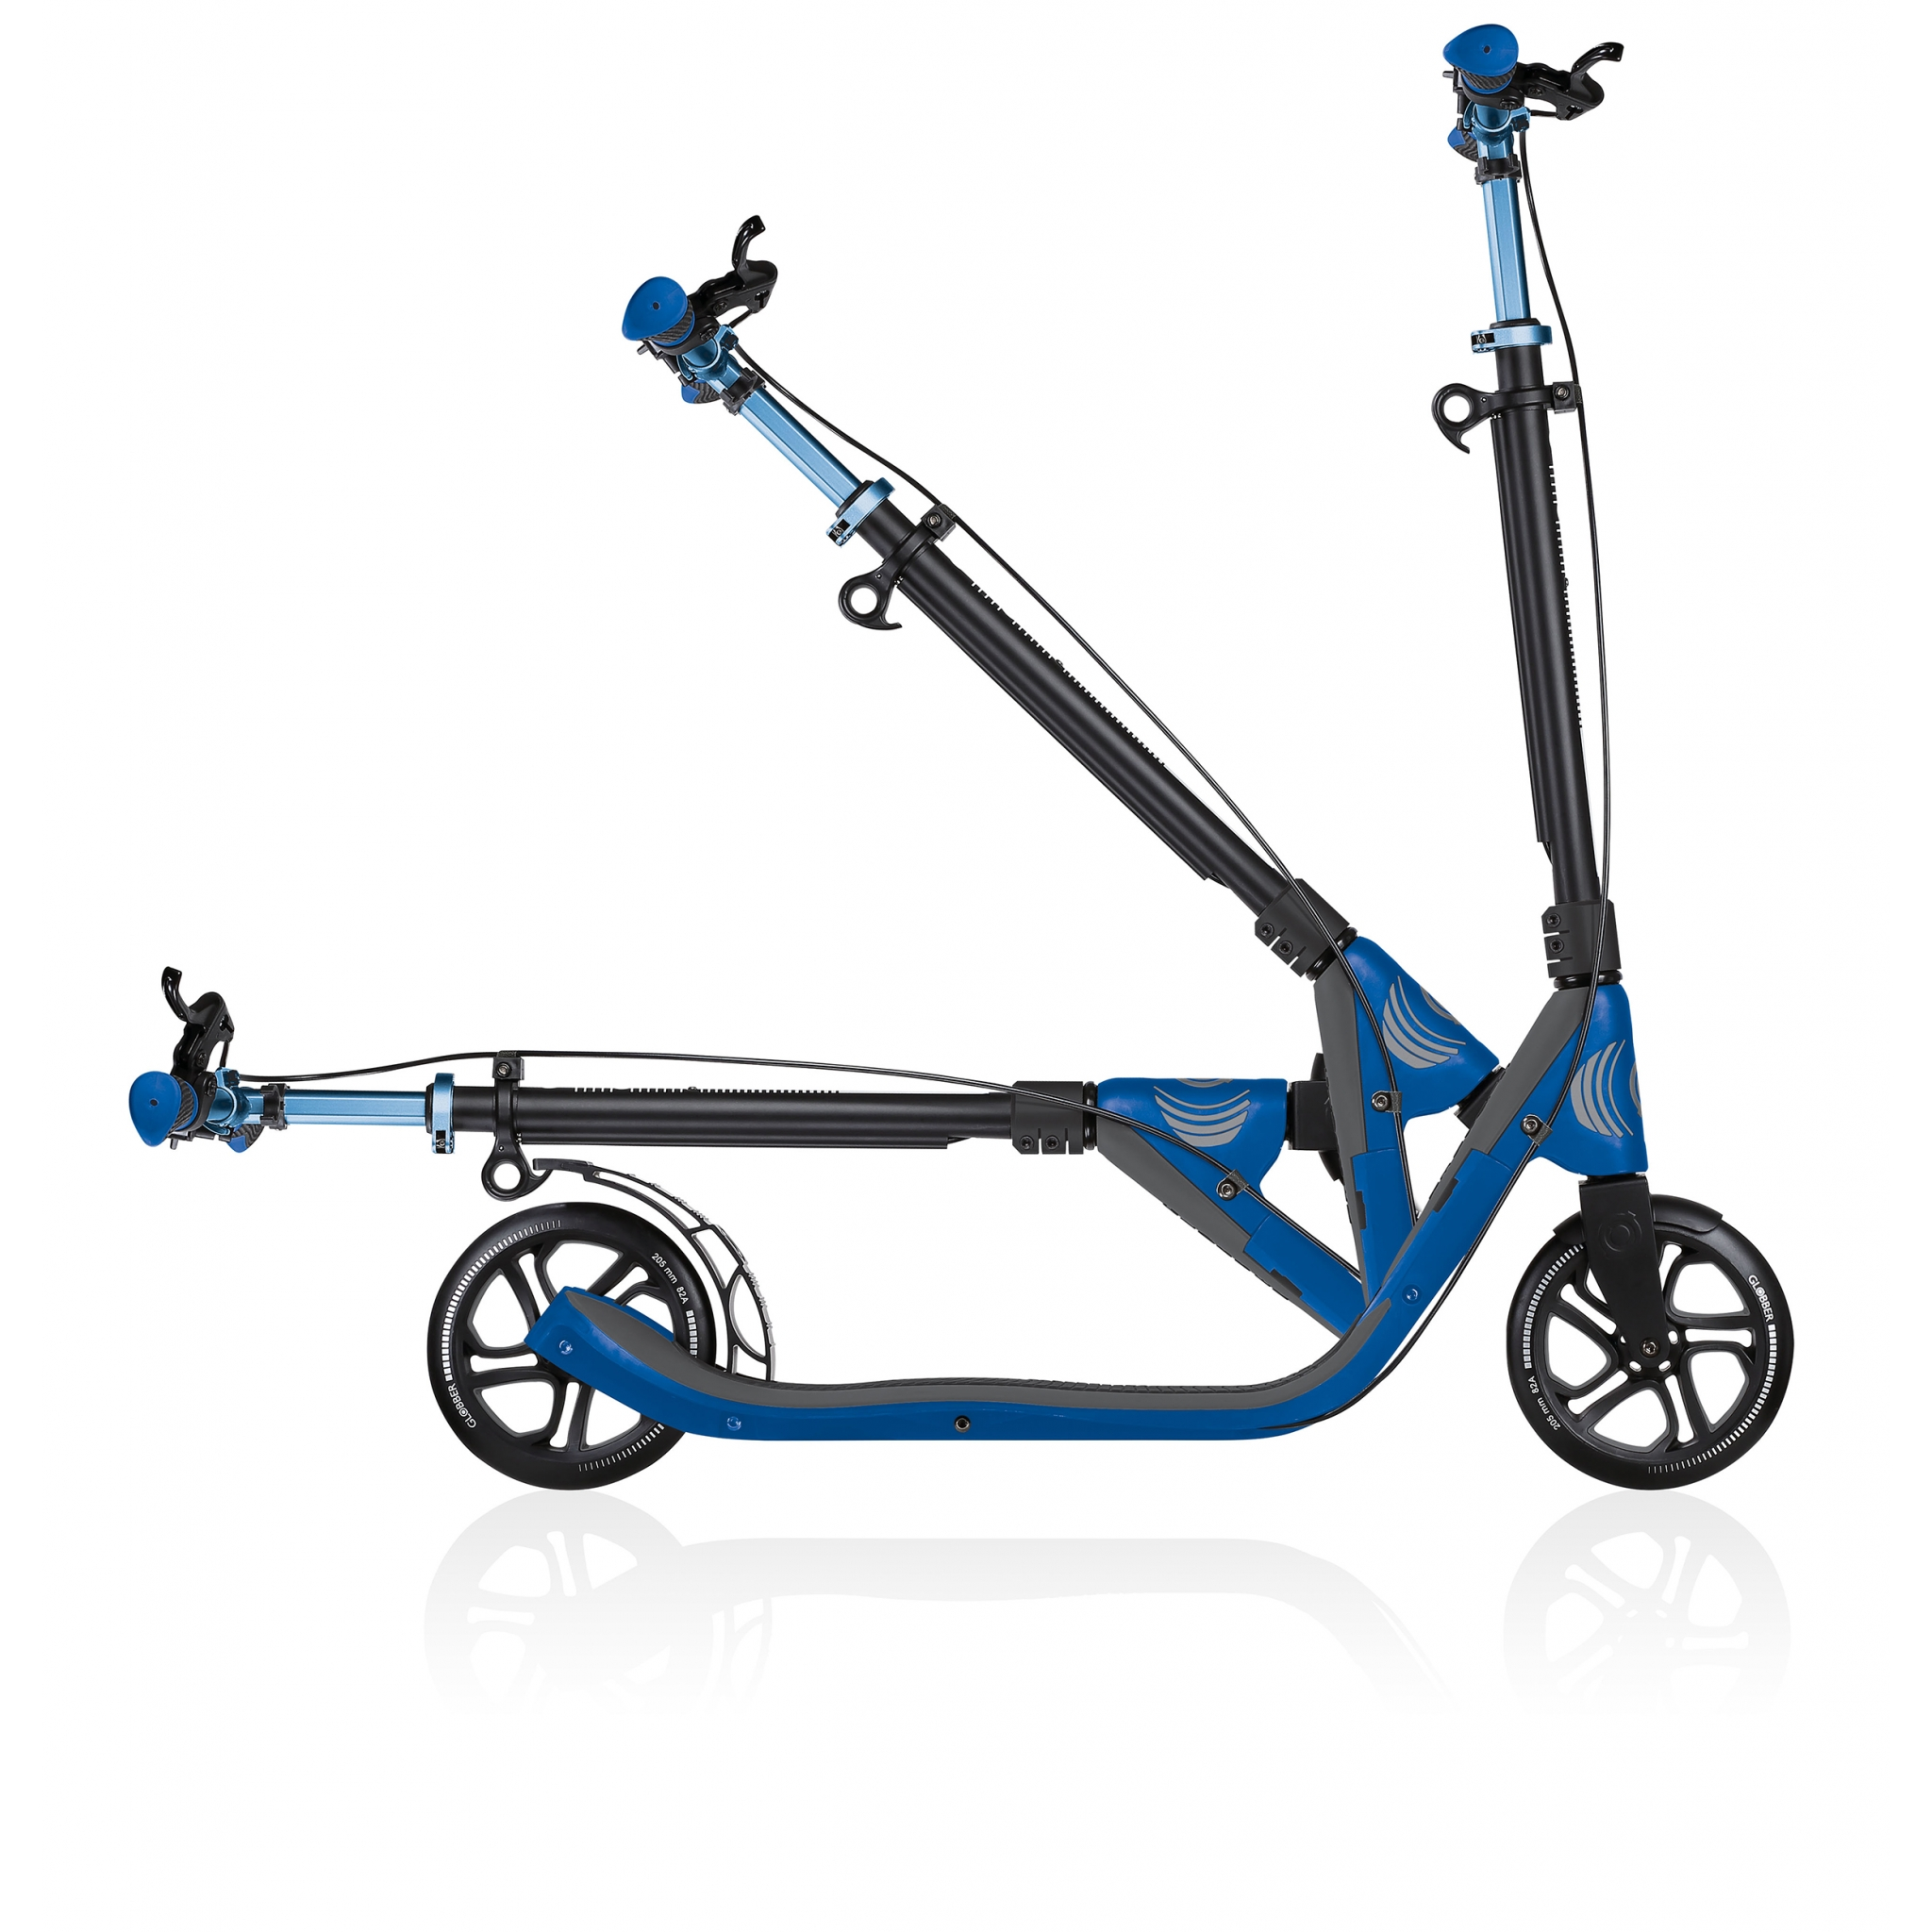 foldable scooter for adults with handbrake - Globber ONE NL 205 DELUXE 3